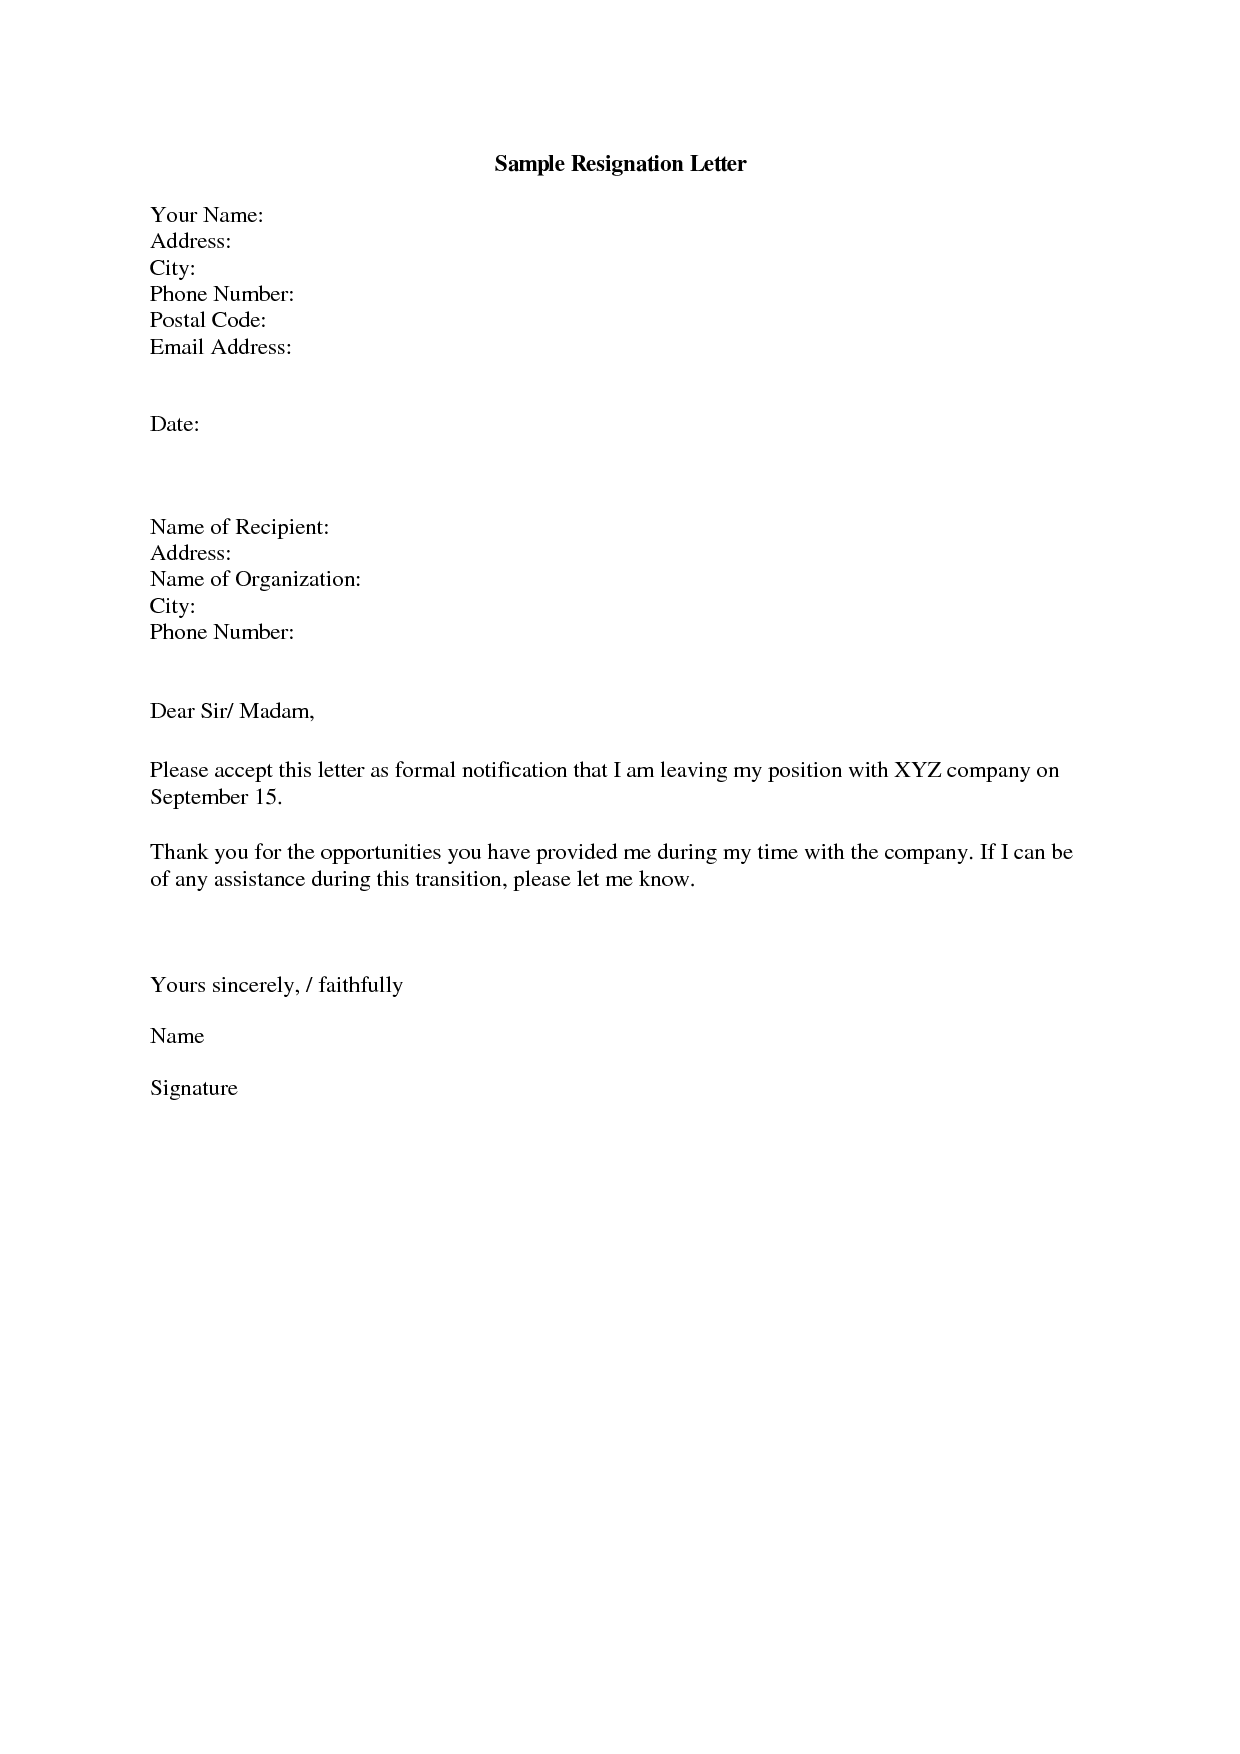 resignation letter pdf professional resume cover letter sample resignation letter pdf sample resignation letter wm libraries job resignation letter sample short and sweet professional